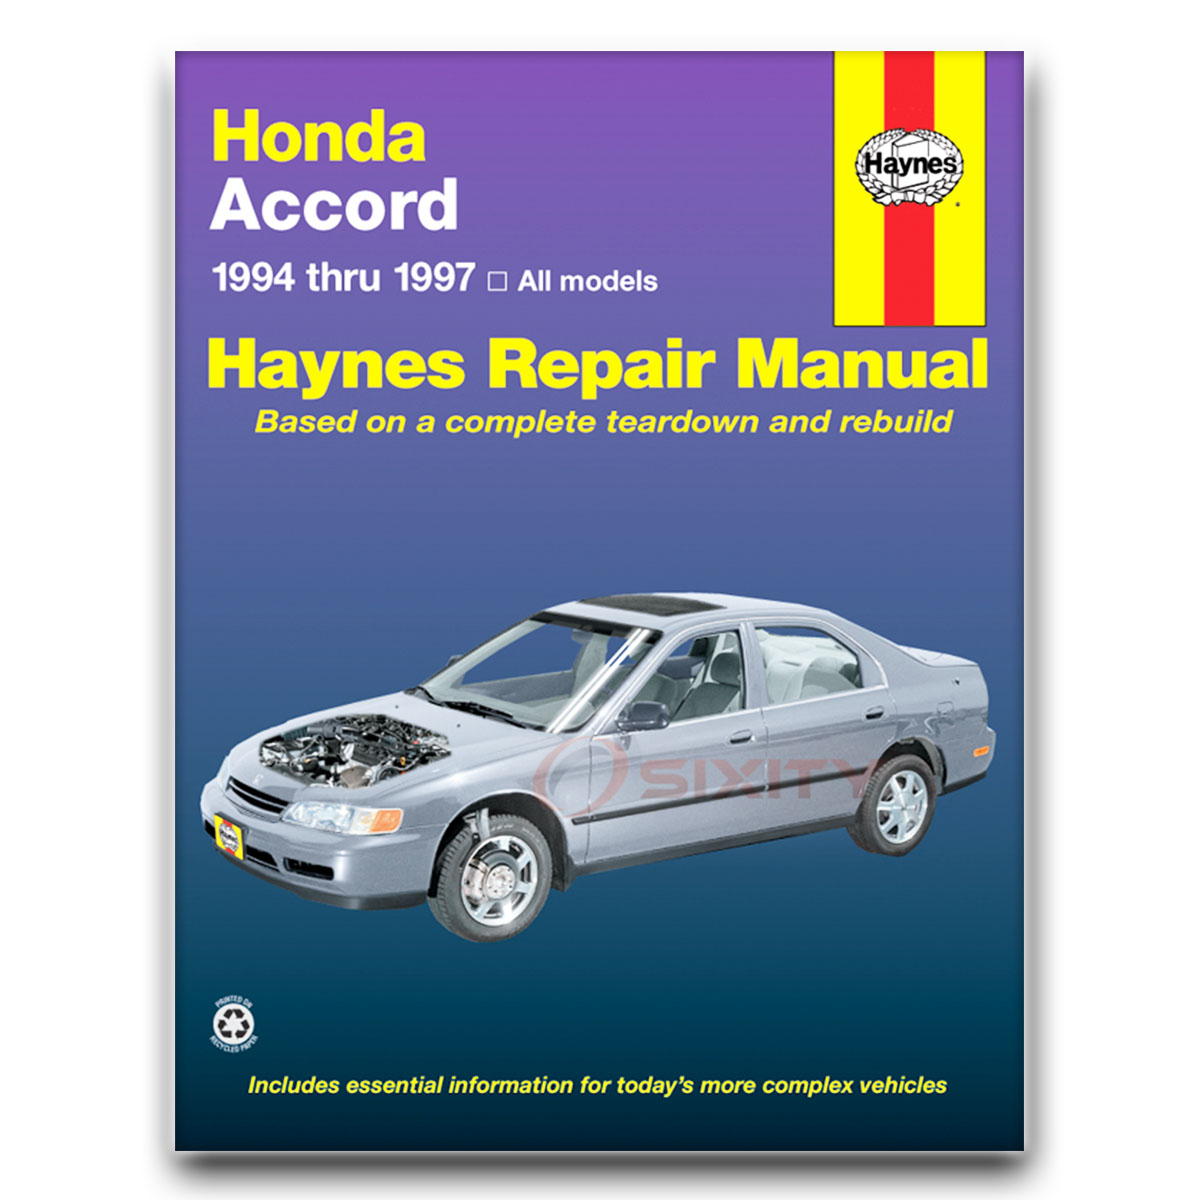 haynes repair manual 42013 for honda accord 94 97 shop service rh ebay com Honda  Accord Repair Manual Online 2000 Honda Accord Repair Manual